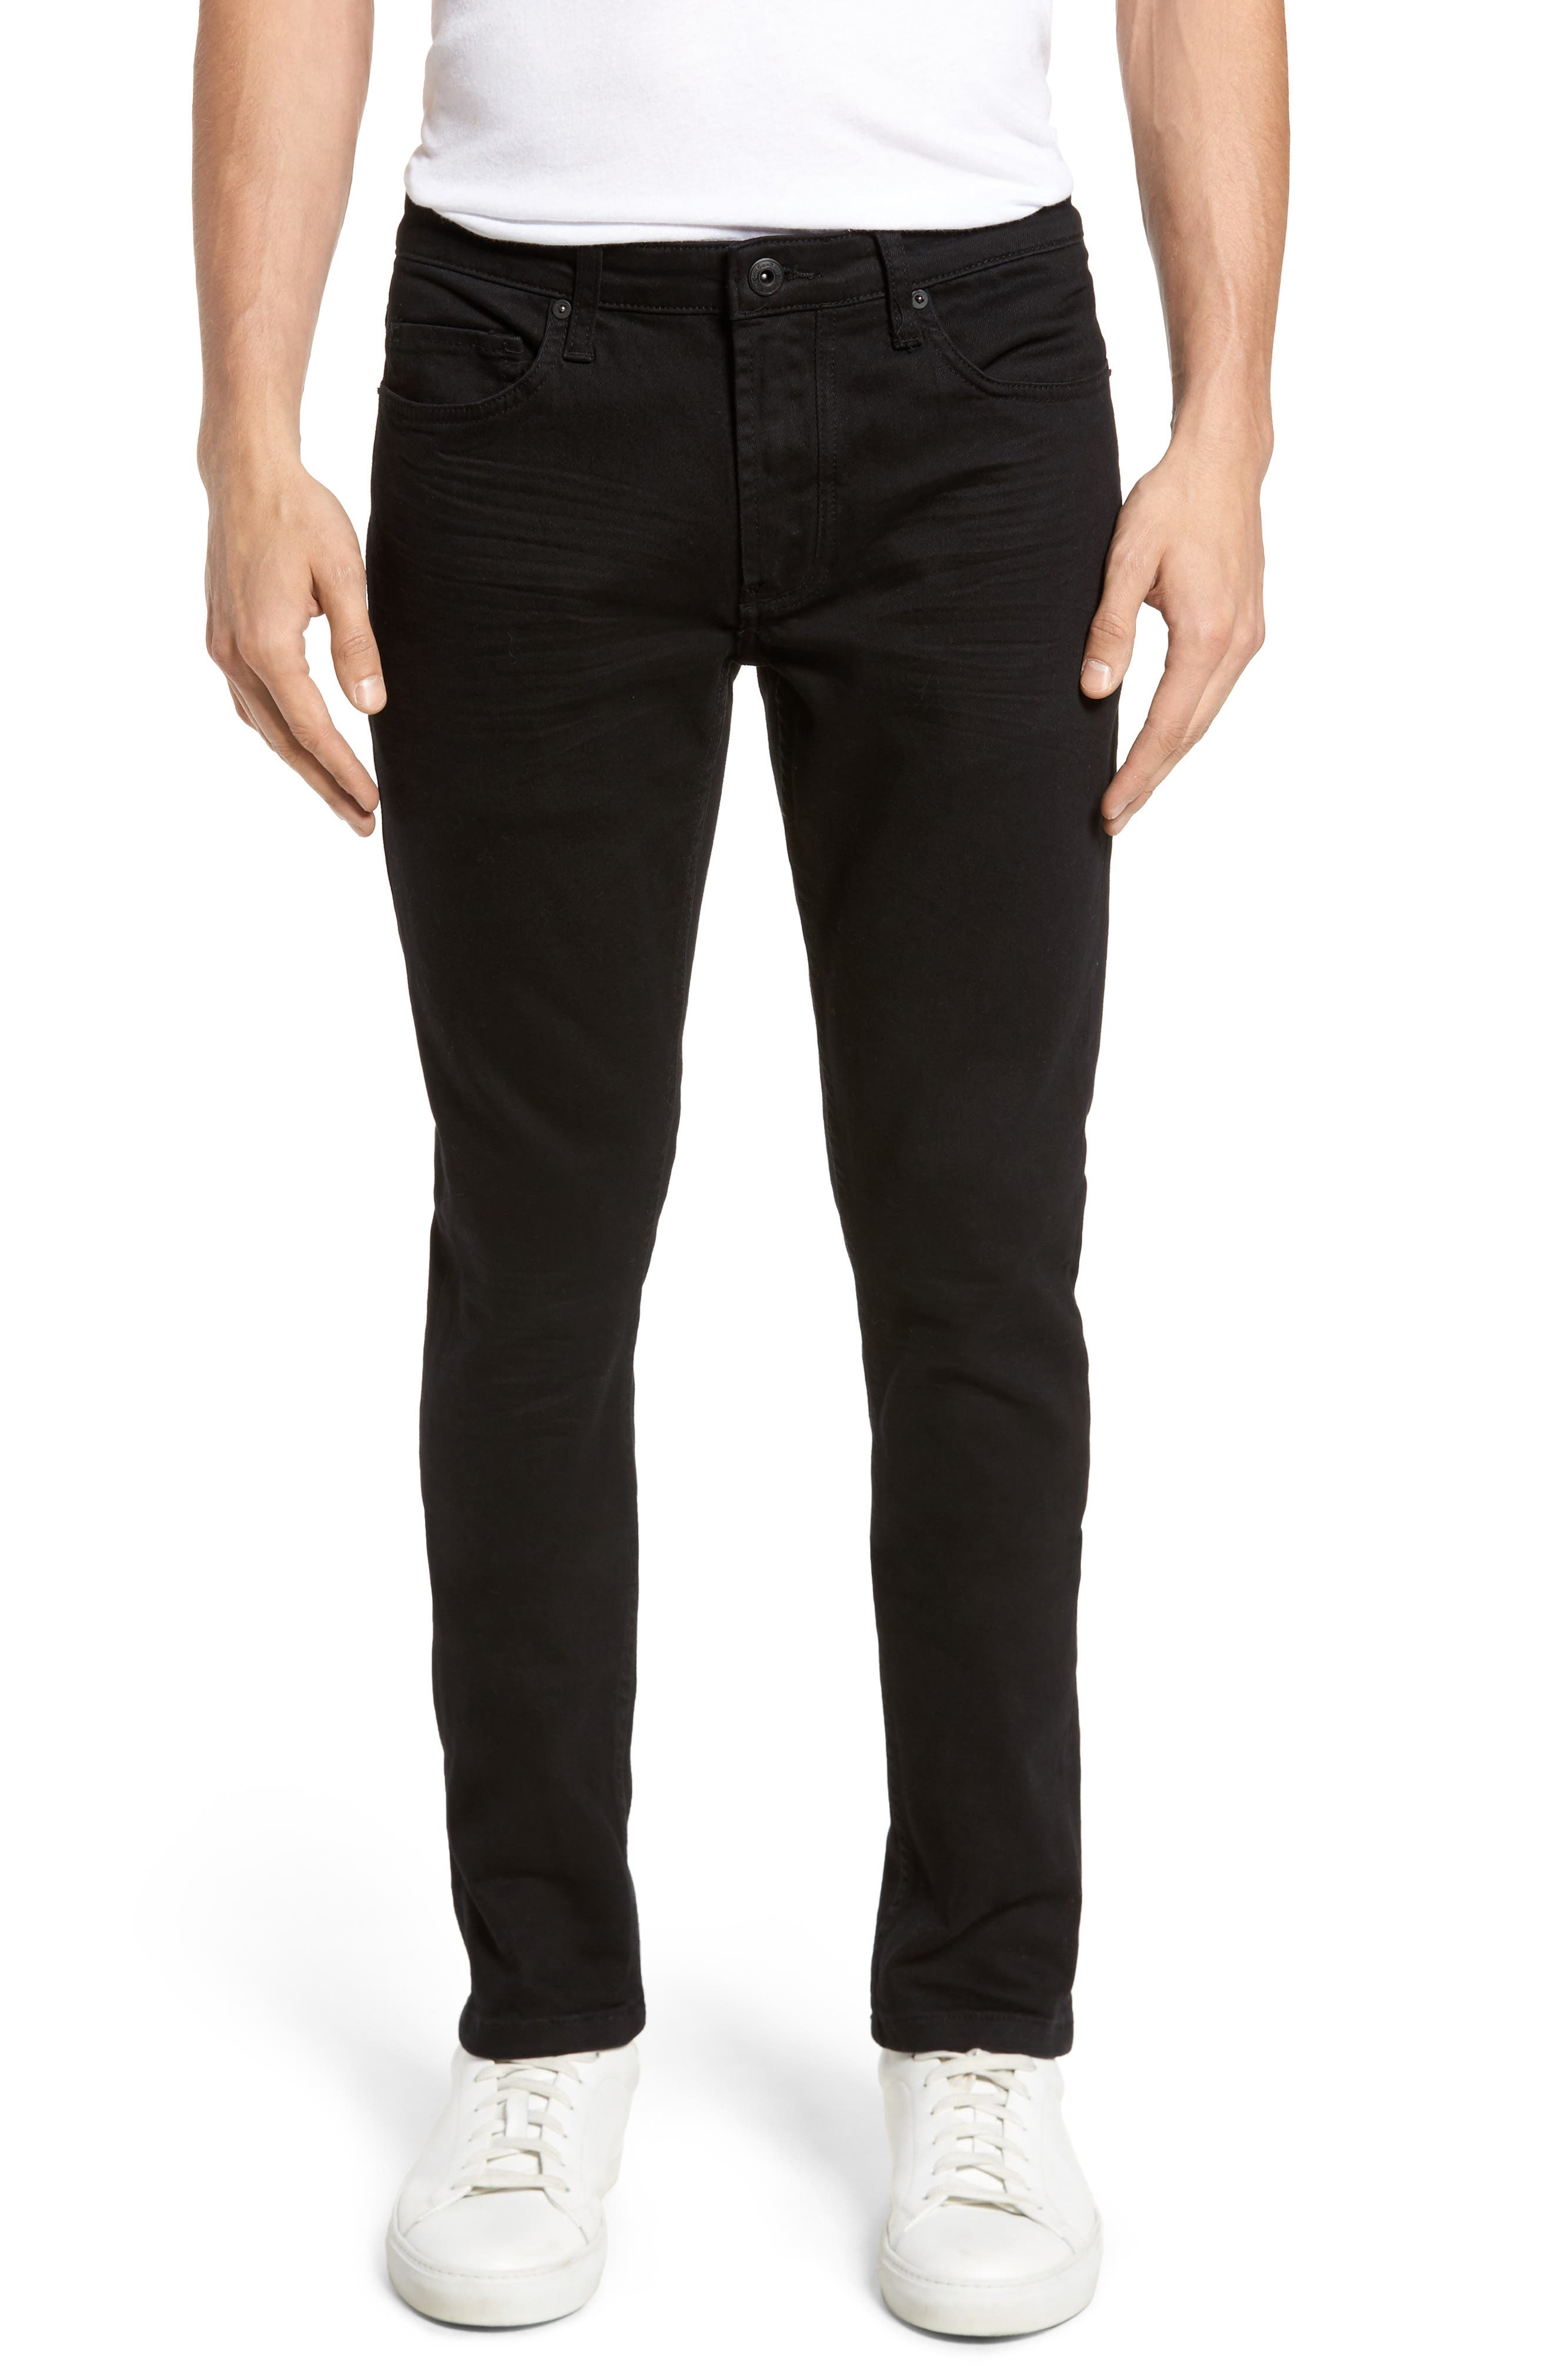 Horatio Skinny Fit Jeans,                             Main thumbnail 1, color,                             High Q